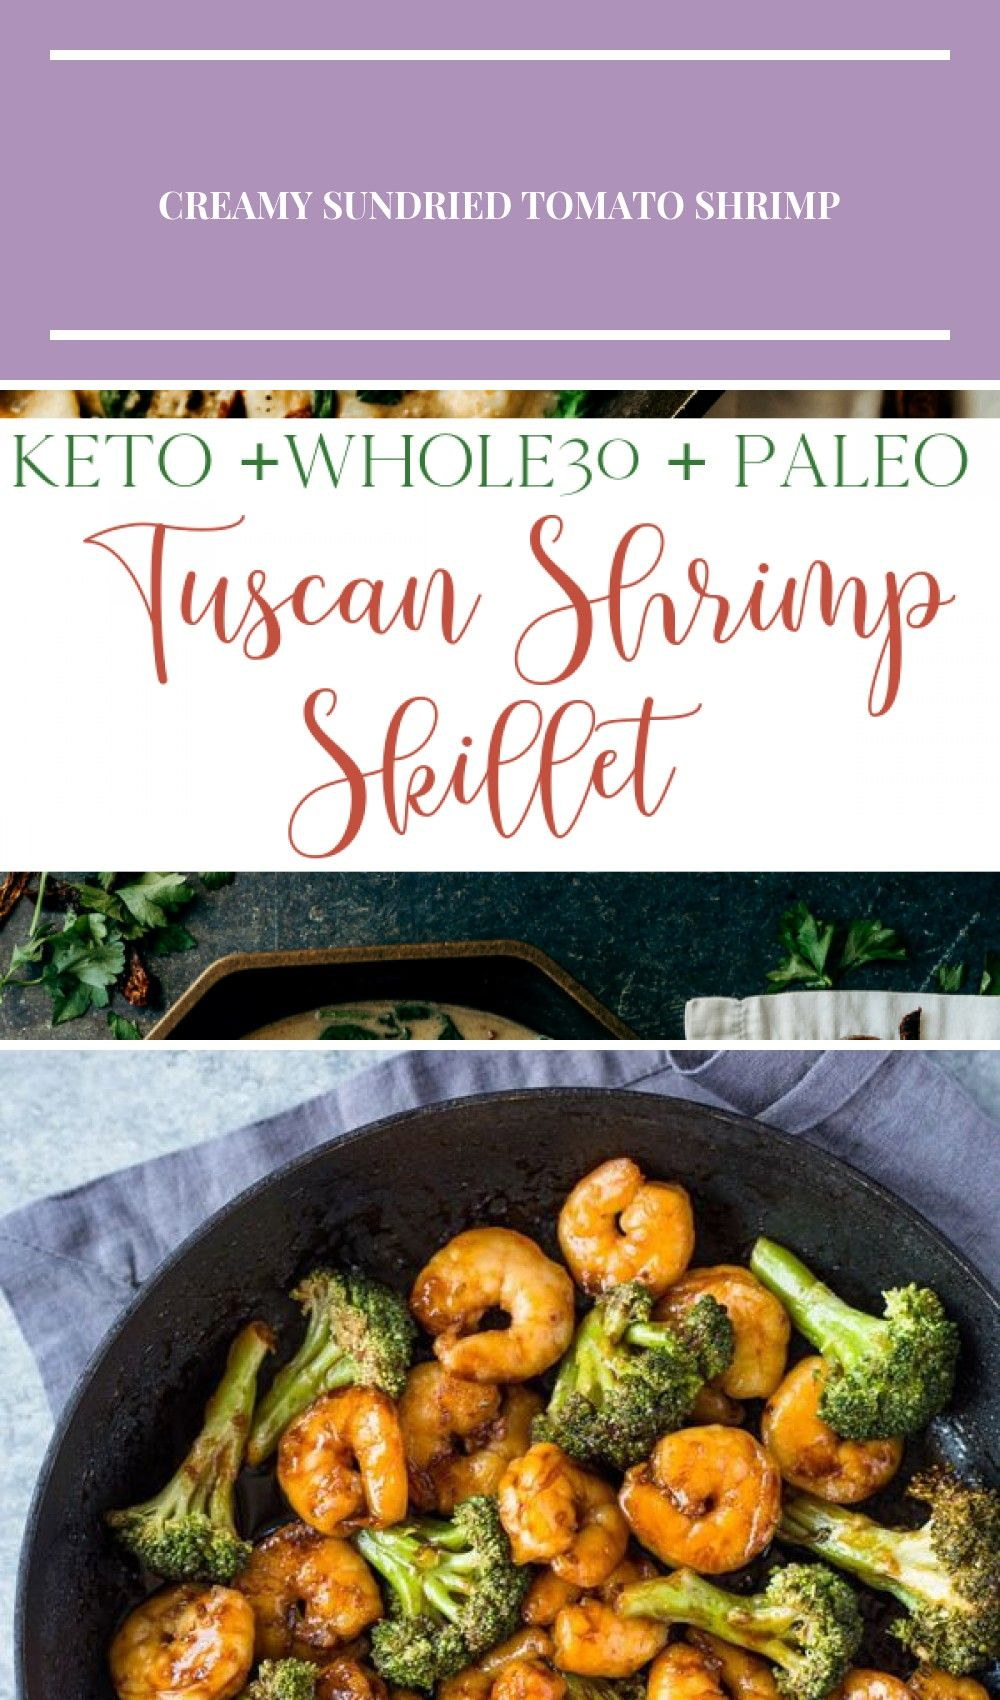 A rich and satisfying Paleo and Whole30 compliant shrimp coated in a thick and delicious sundried tomato  cream sauce and served over cauliflower rice. #keto #whole30 #paleo #skilletmeals #tuscanshrimp #ketorecipes #whole30recipes shrimp healthy Whole30 Tuscan Shrimp Skillet #tomatocreamsauces